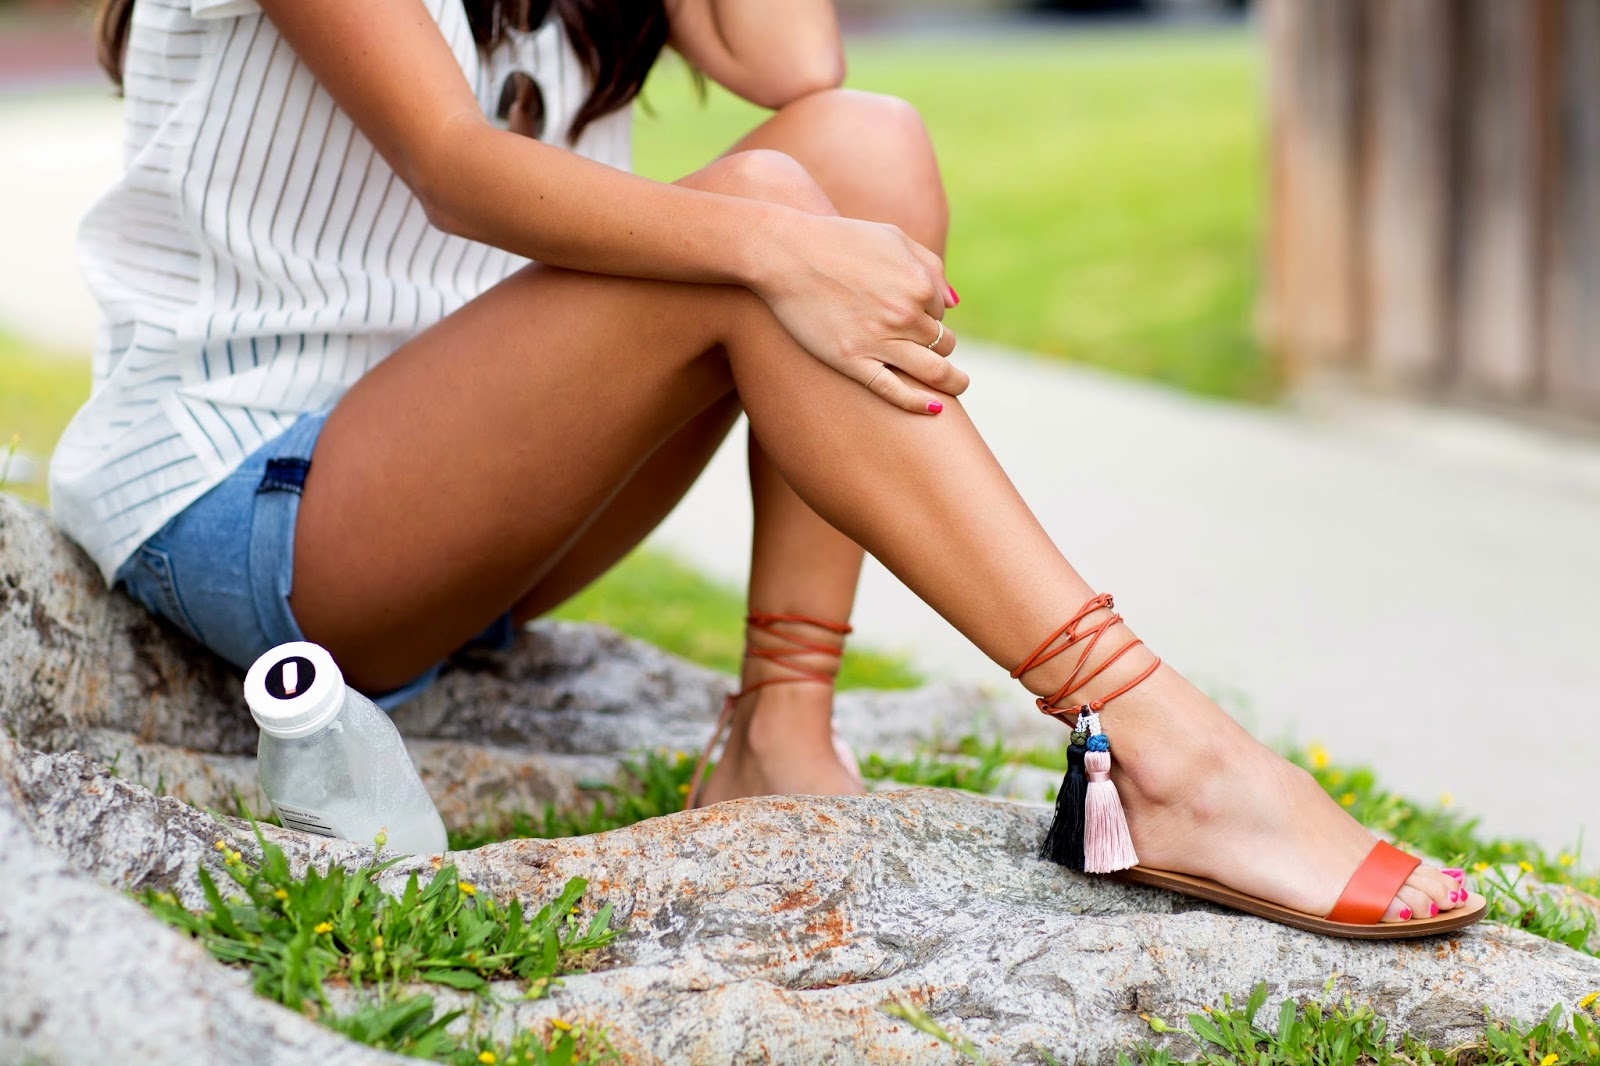 j crew tassel sandals, how to wear tie up shoes, denim shorts, pursuit of shoes